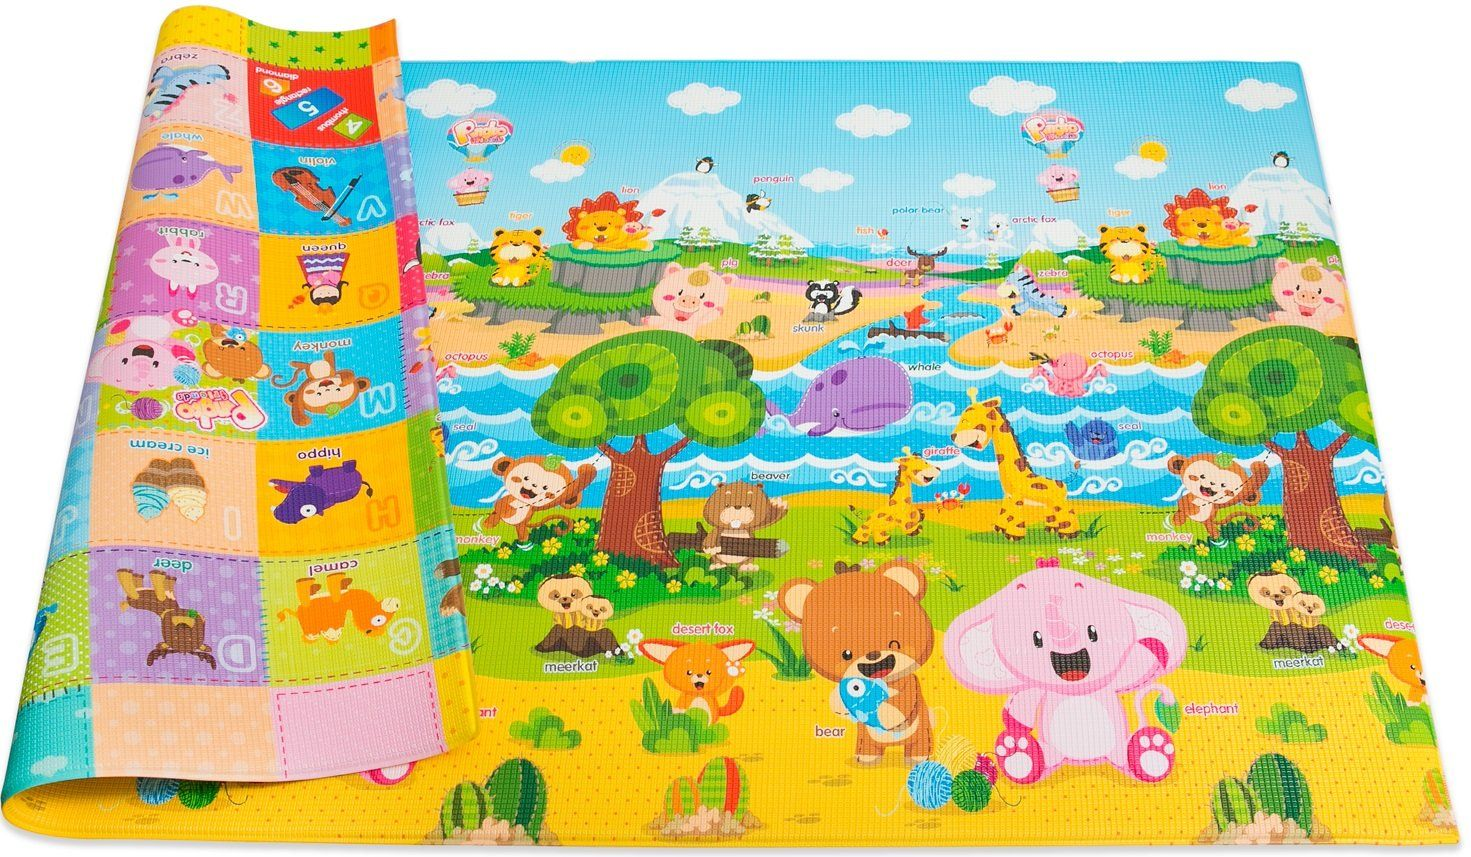 playmats buy floor toys floors at pay gym music baby piano shop new play bell pedal activity bed price frame multifunction fitness mat soft best